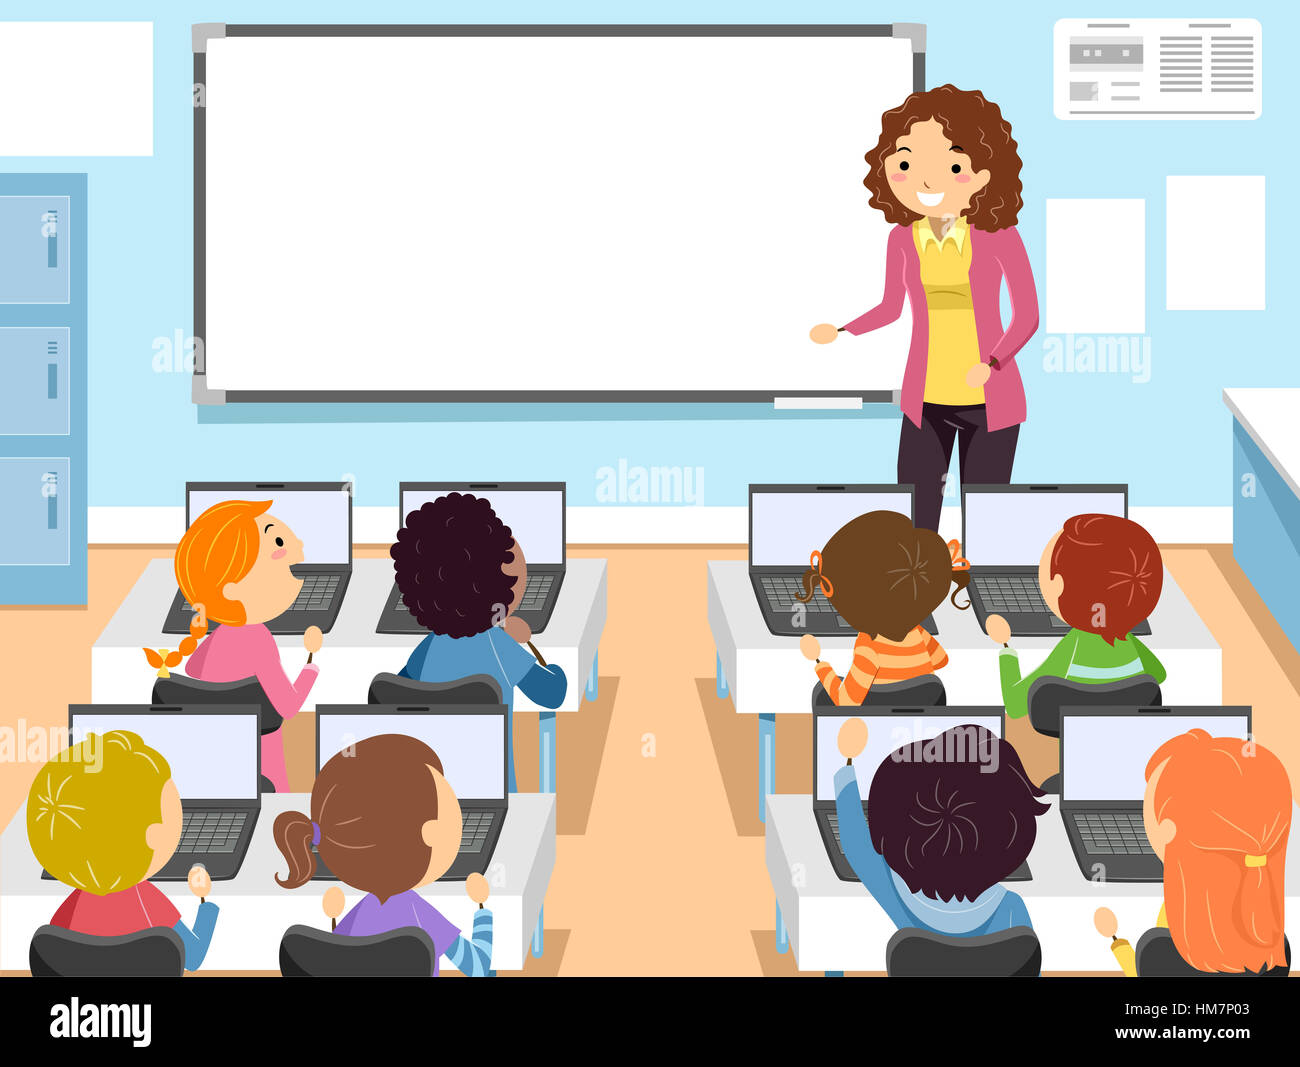 Stickman Illustration Of Preschool Children In A Computer